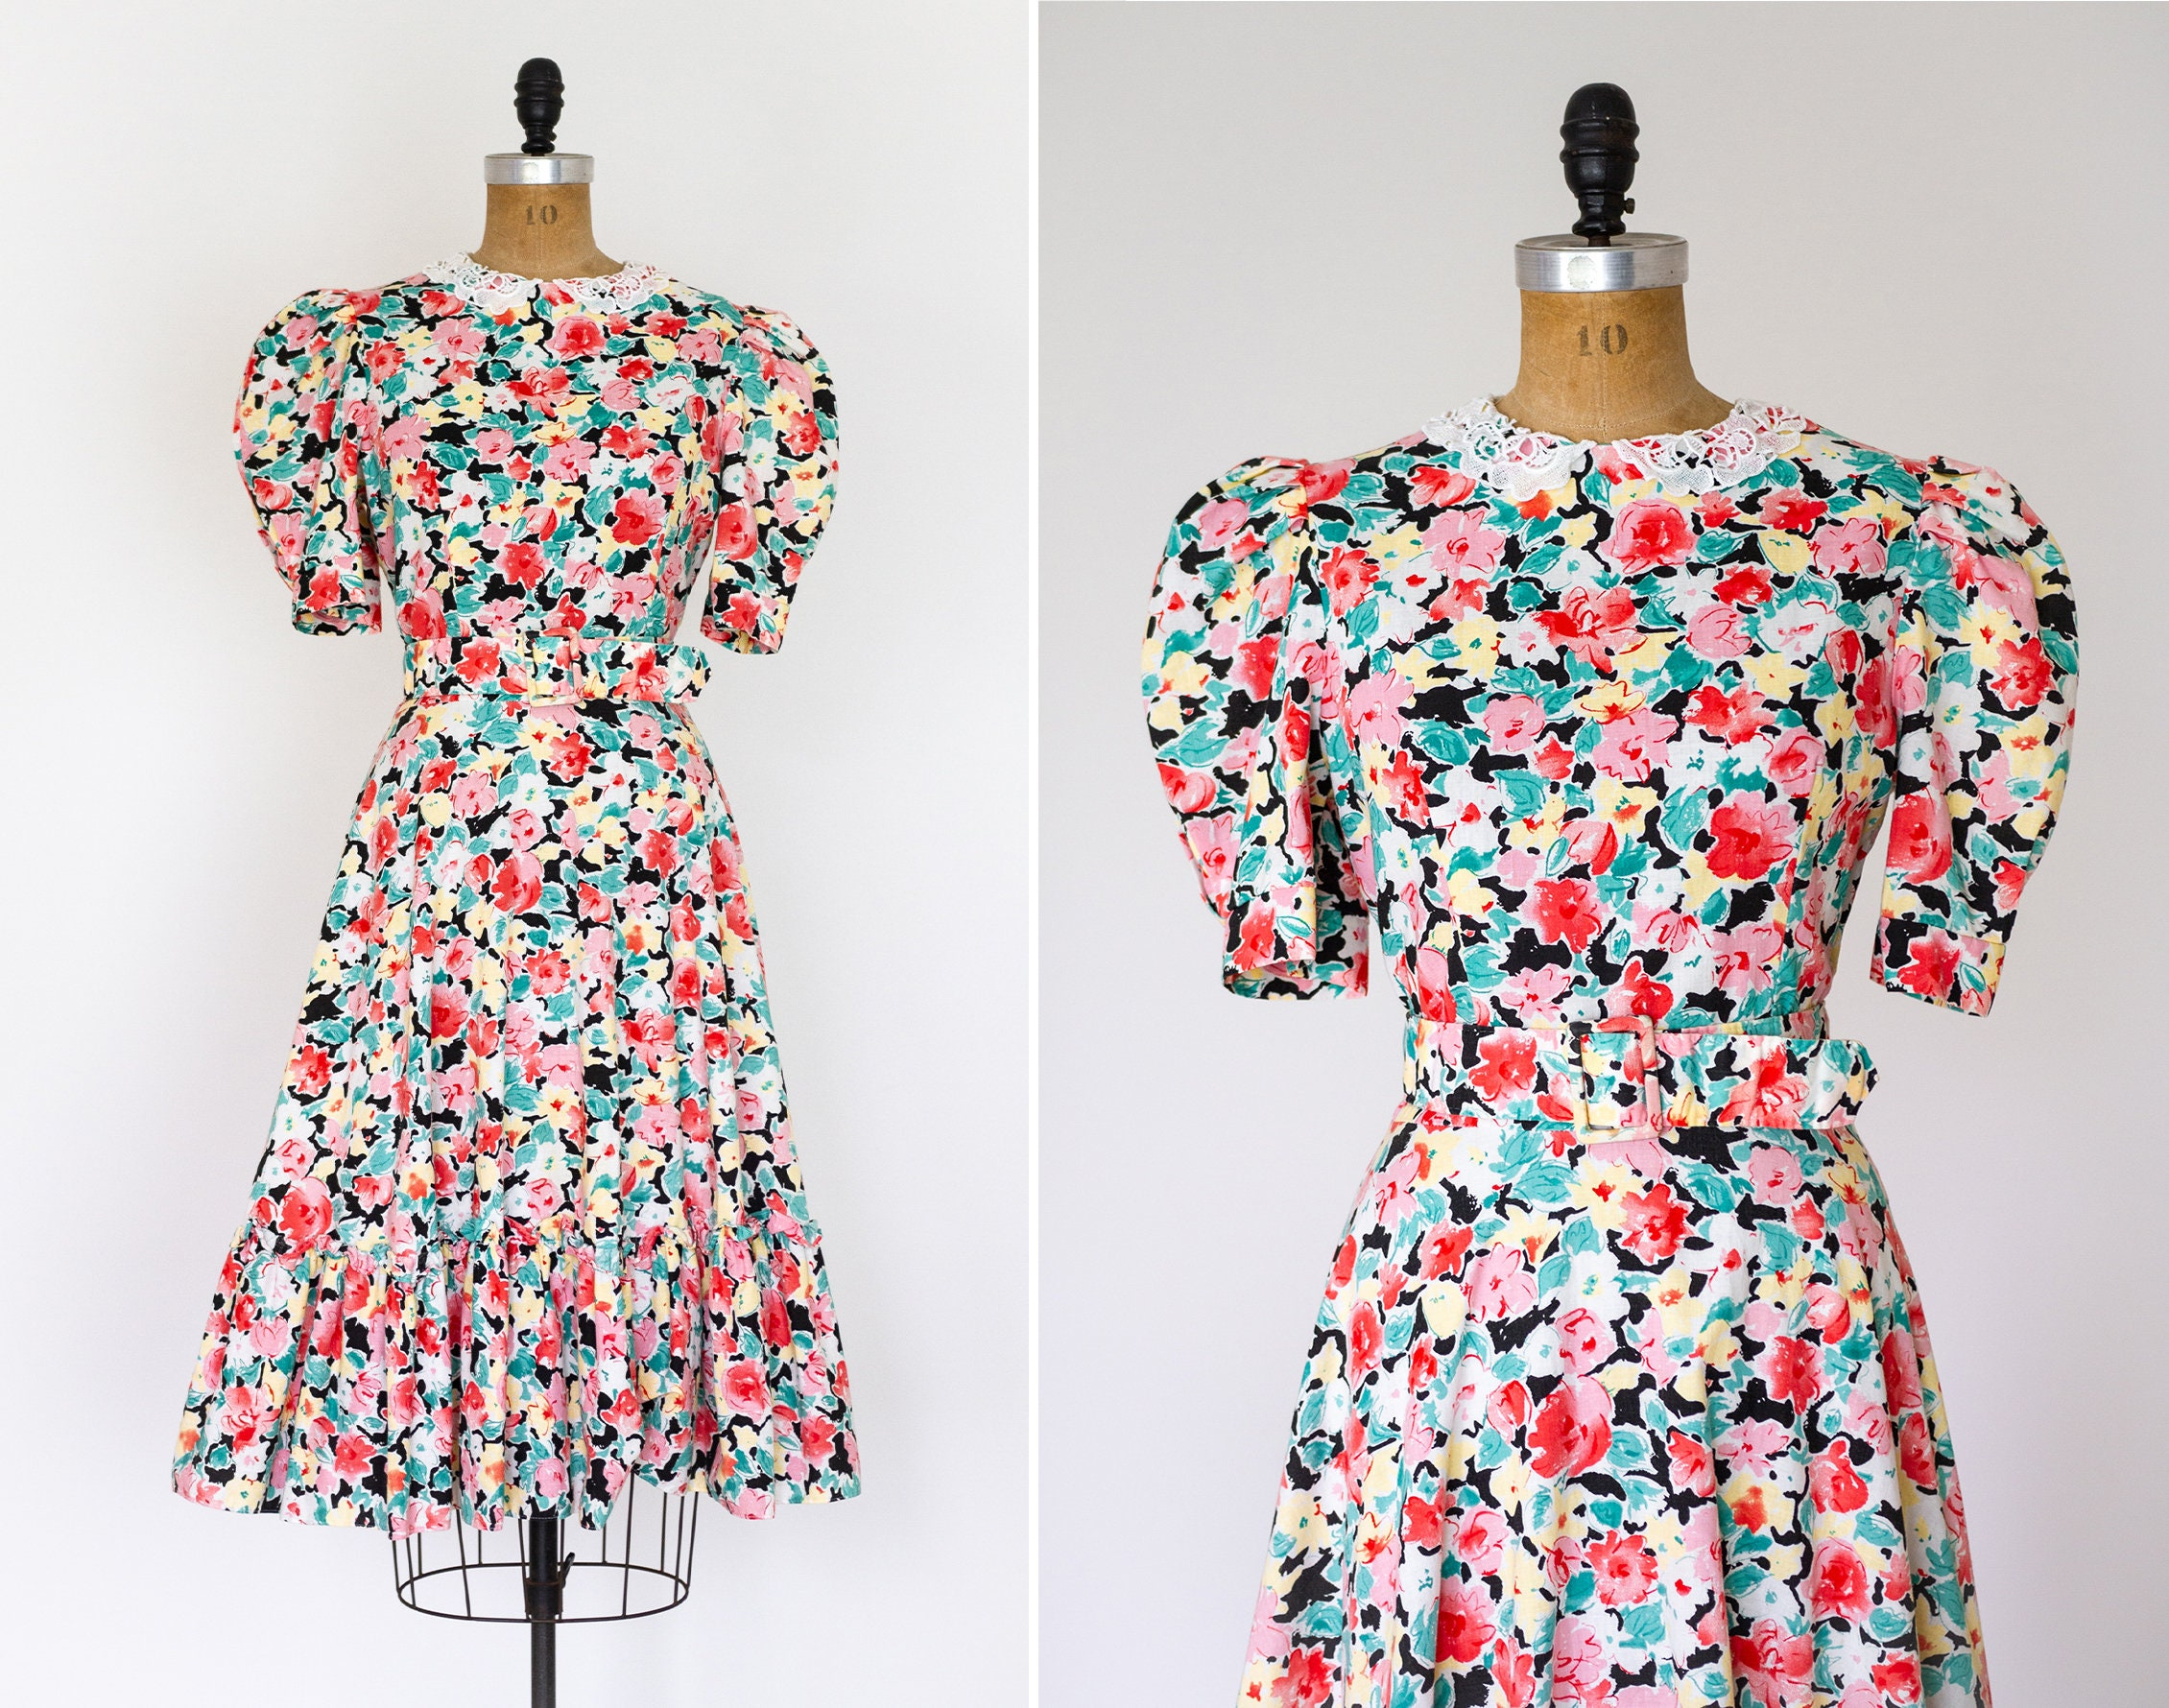 80s Dresses | Casual to Party Dresses Vintage 90S Floral Ruffle Dress  1980S 1990S Summer 80S Puff Sleeve $28.00 AT vintagedancer.com